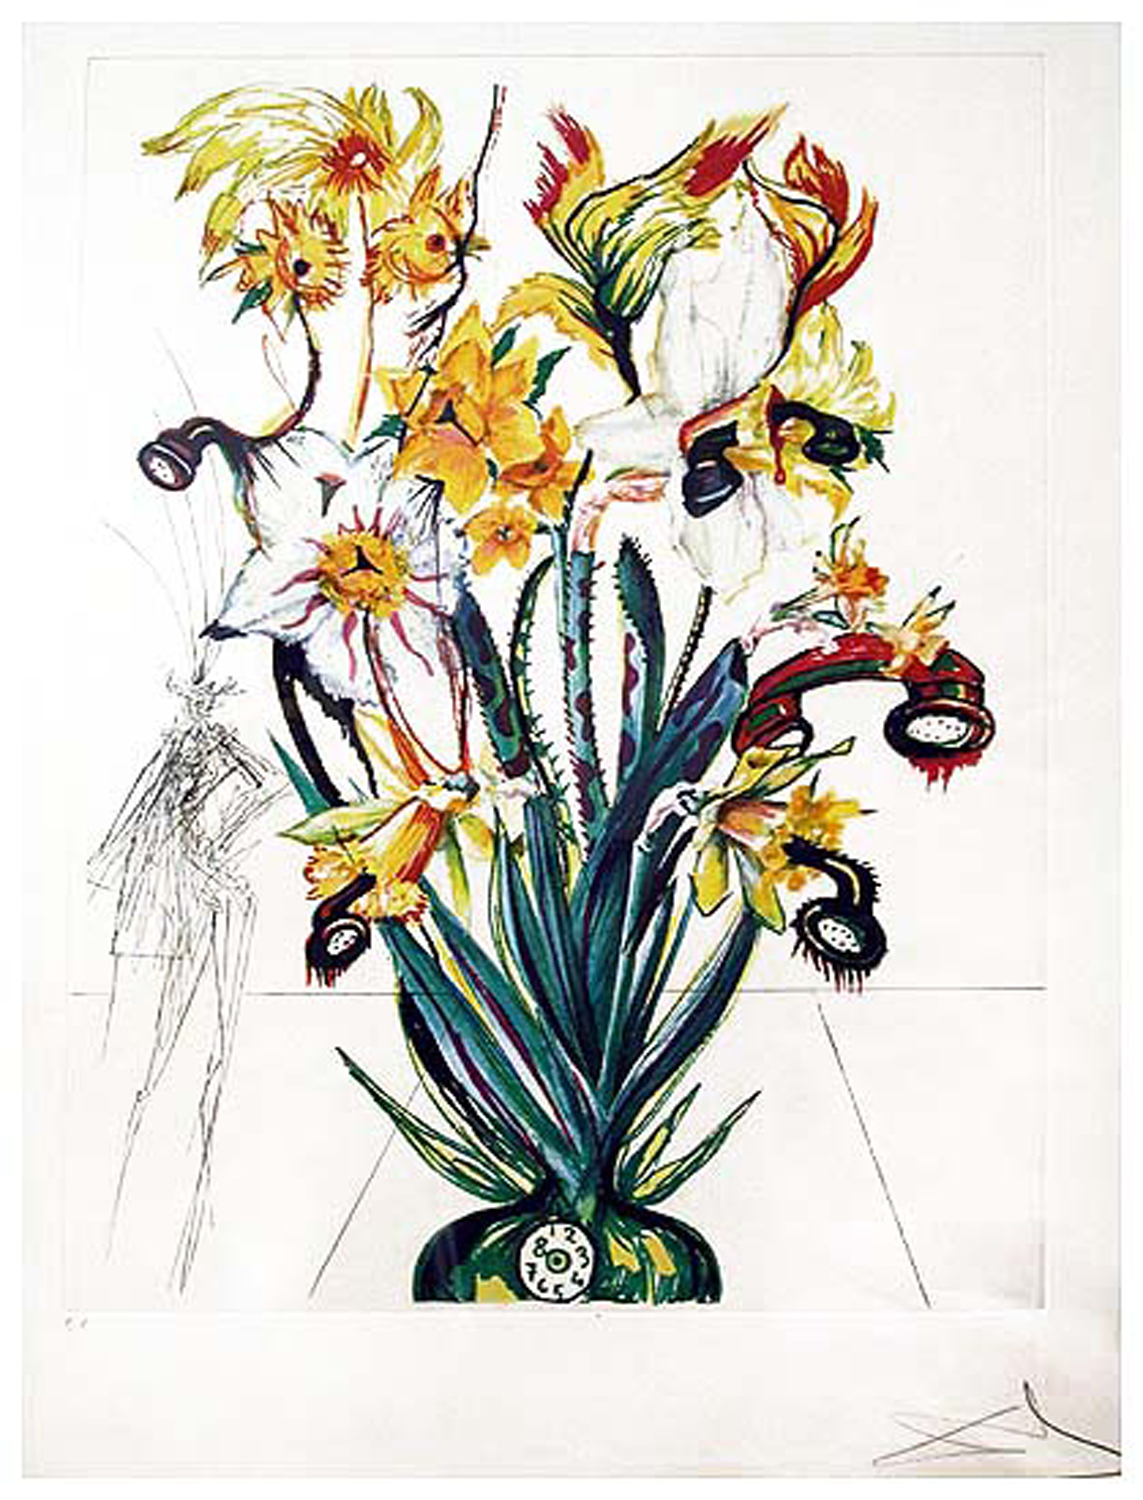 SOLD Florals (Surrealistic Flowers 1972): Narcissus telephonans inondis (Narcissus & Phones), heliogravure with etching, 23 x 16.5, signed 210/350, 1972, ML 549